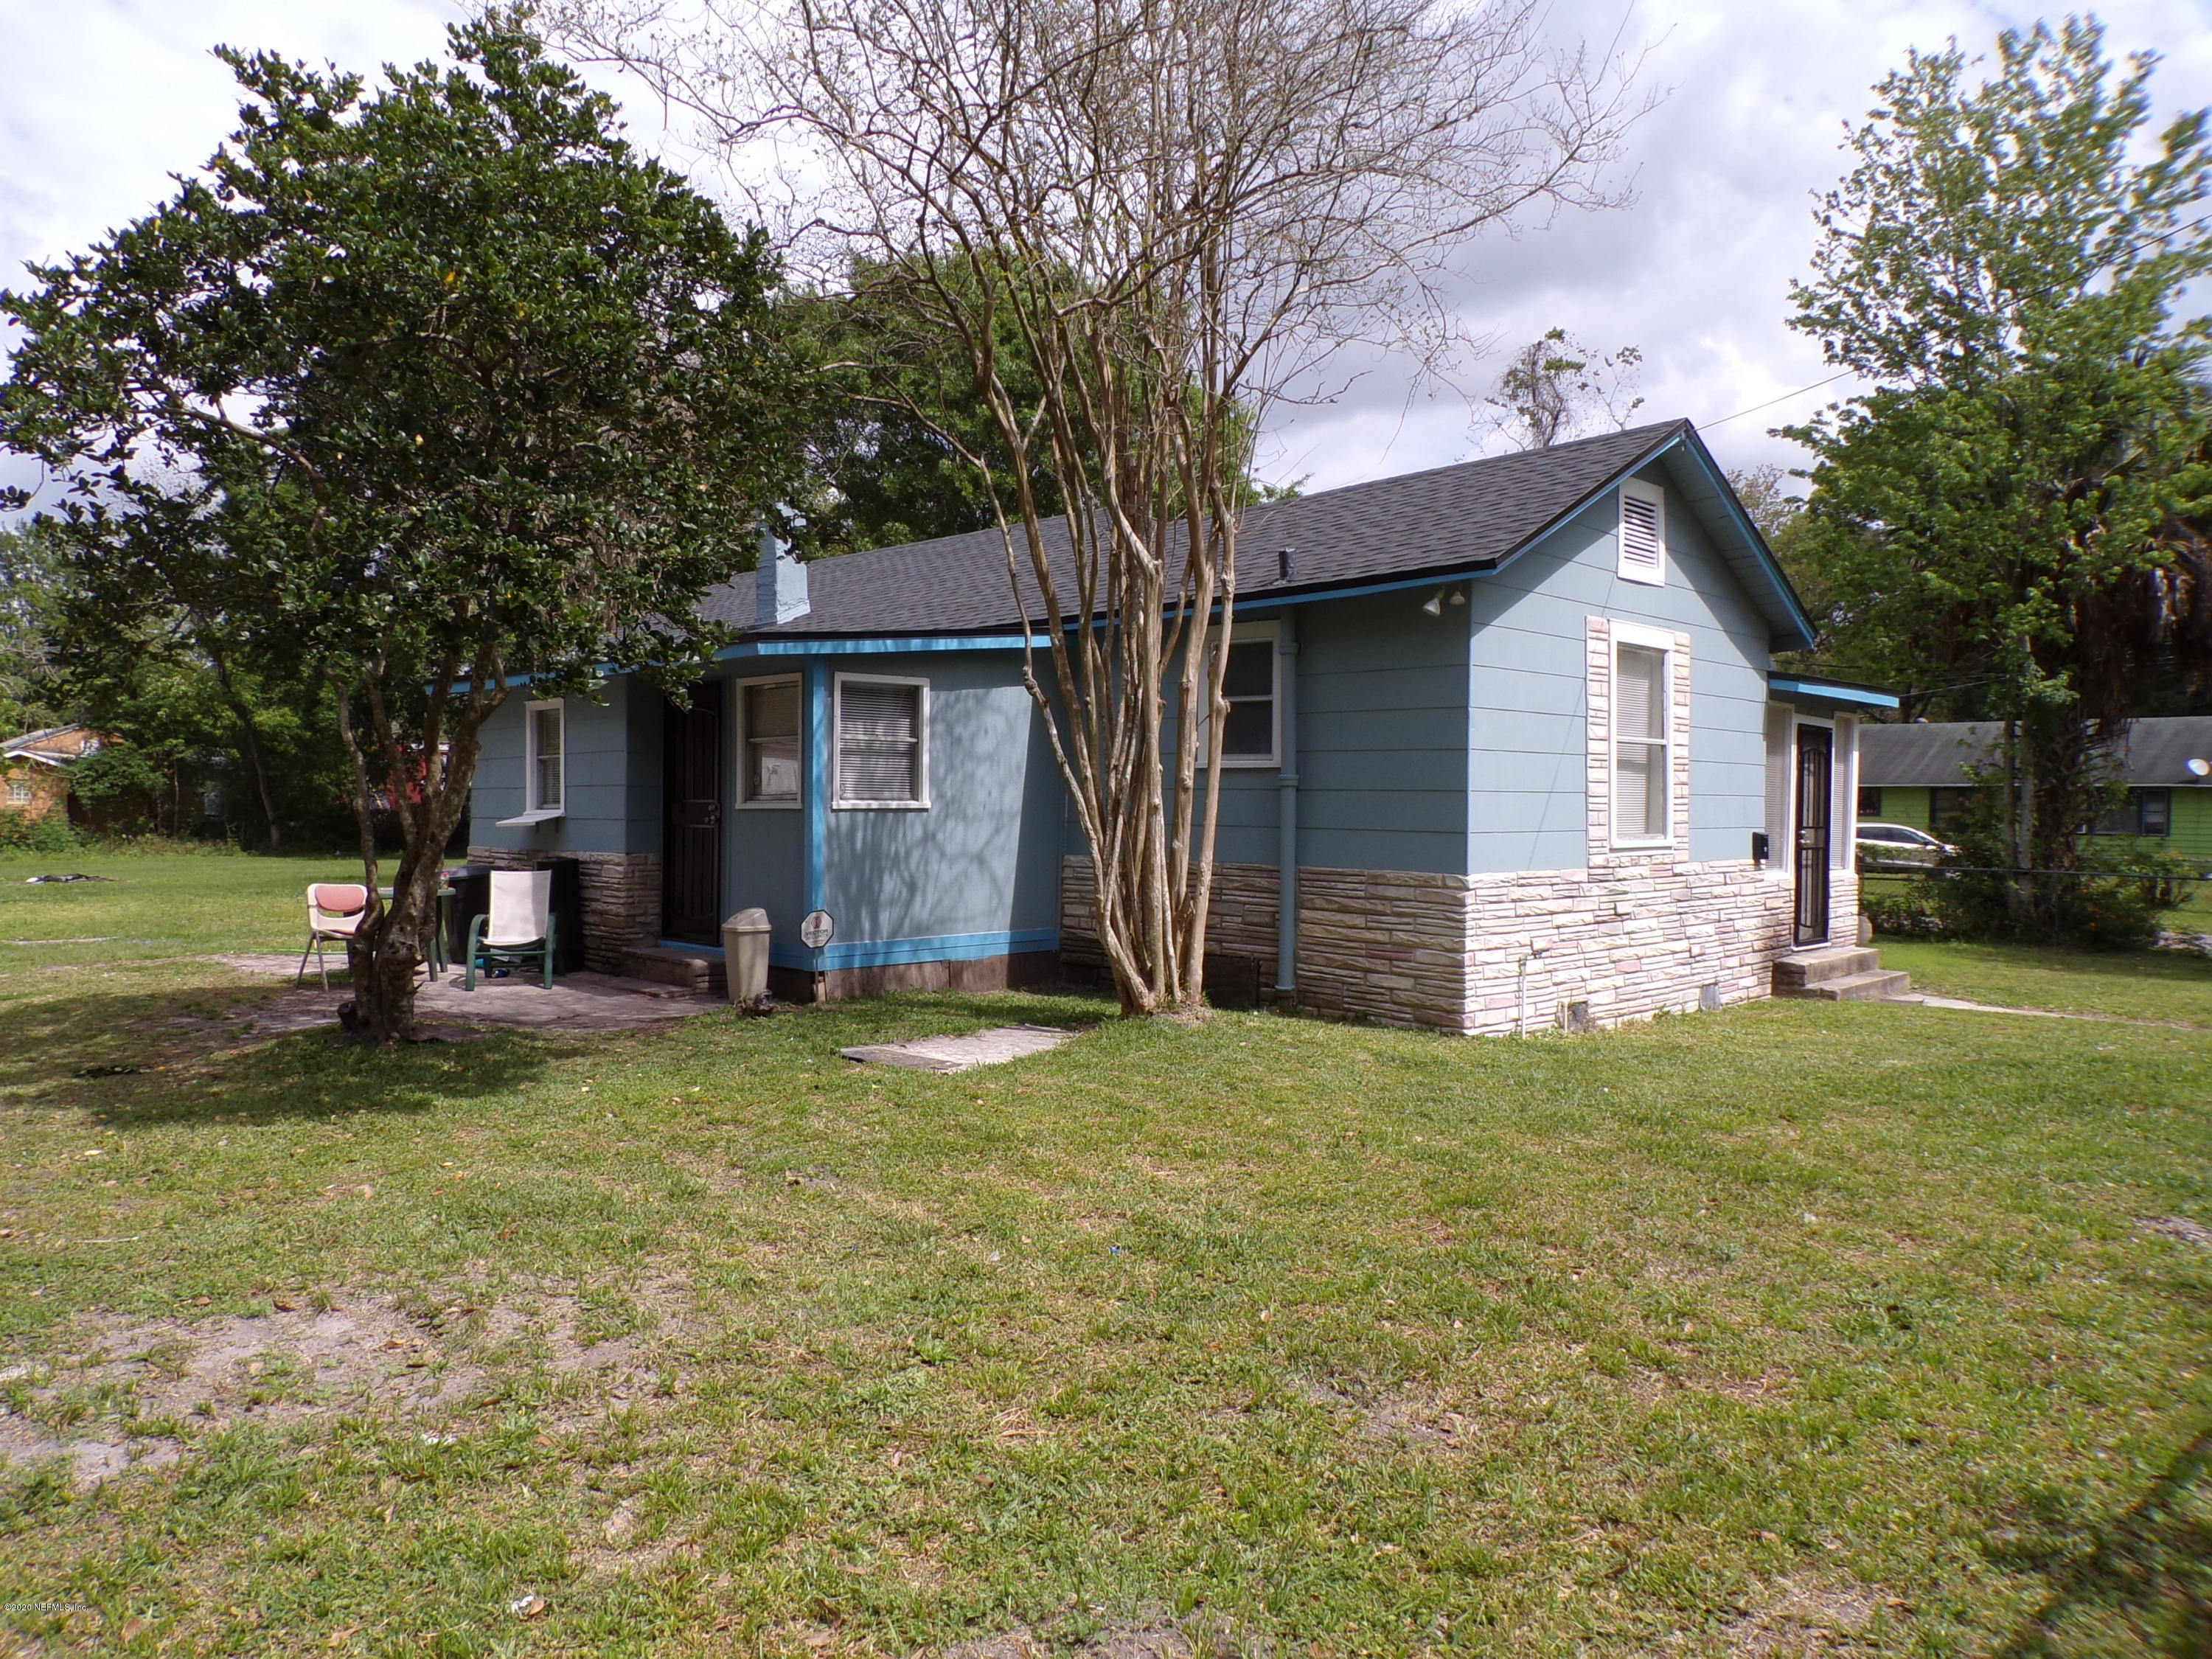 3405 COLUMBUS, JACKSONVILLE, FLORIDA 32254, 3 Bedrooms Bedrooms, ,2 BathroomsBathrooms,Residential,For sale,COLUMBUS,1055452